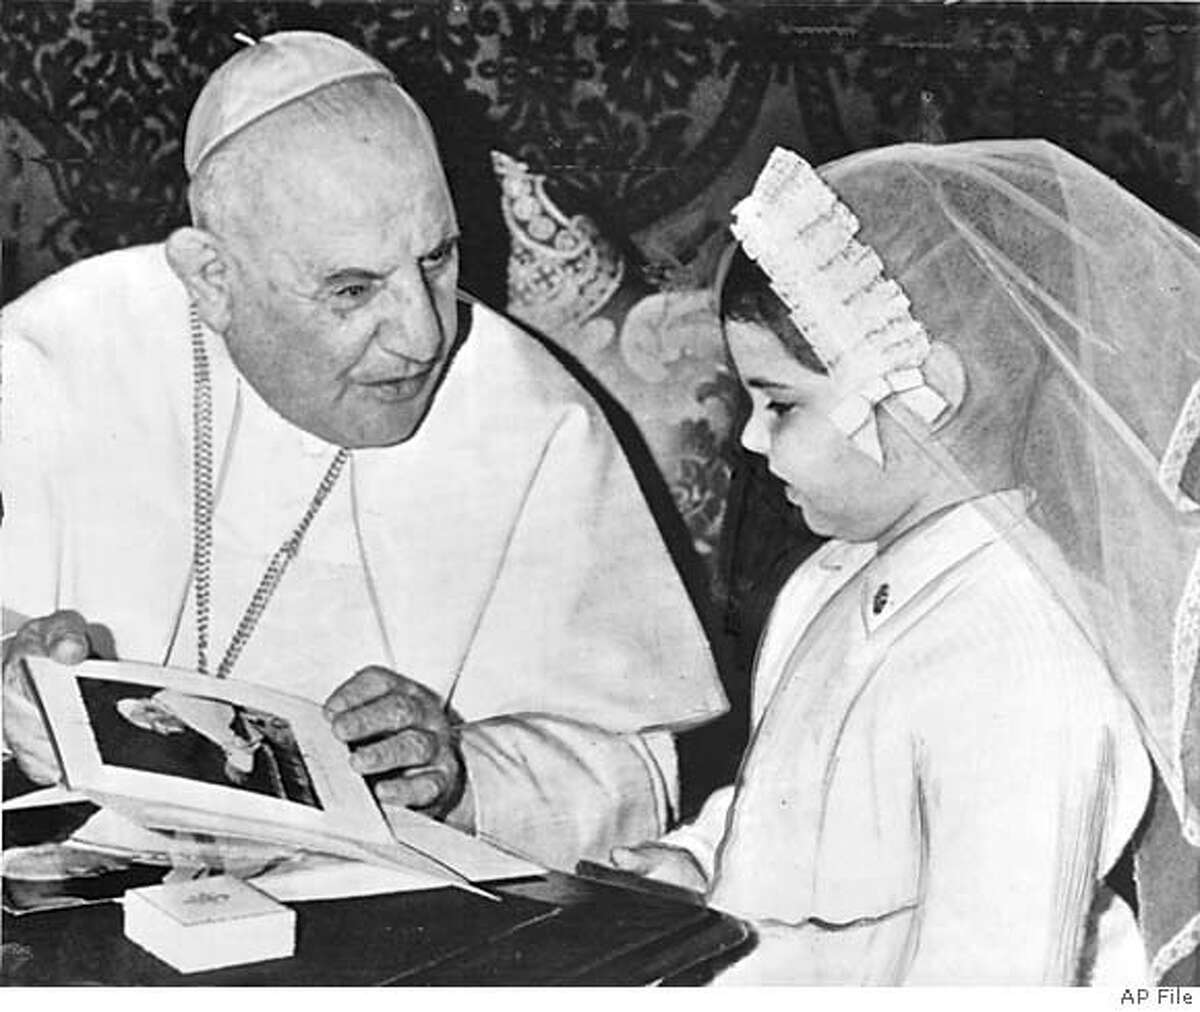 (NY21-April11) Her dream comes true. Pope John XXIII, seated at his desk in the small throne room at the vatican in rome, gives a photo of himself to Catherine hudson, seven-year old leukemia victim of Oklahoma City, OK. Catherine realized her dream of seaaing the Pontiff when she and her mother mrs. Marlene Hudson, were received in a special audience today. Catherine, who doctors say has only a short time to live, had repeatedly asked her mother to please take her to see the pope. Her unemployed mother sold everything they had tp make the trip. (AP wirephotot via radio from Rome) From Chronicle Photo Library April 12, 1960